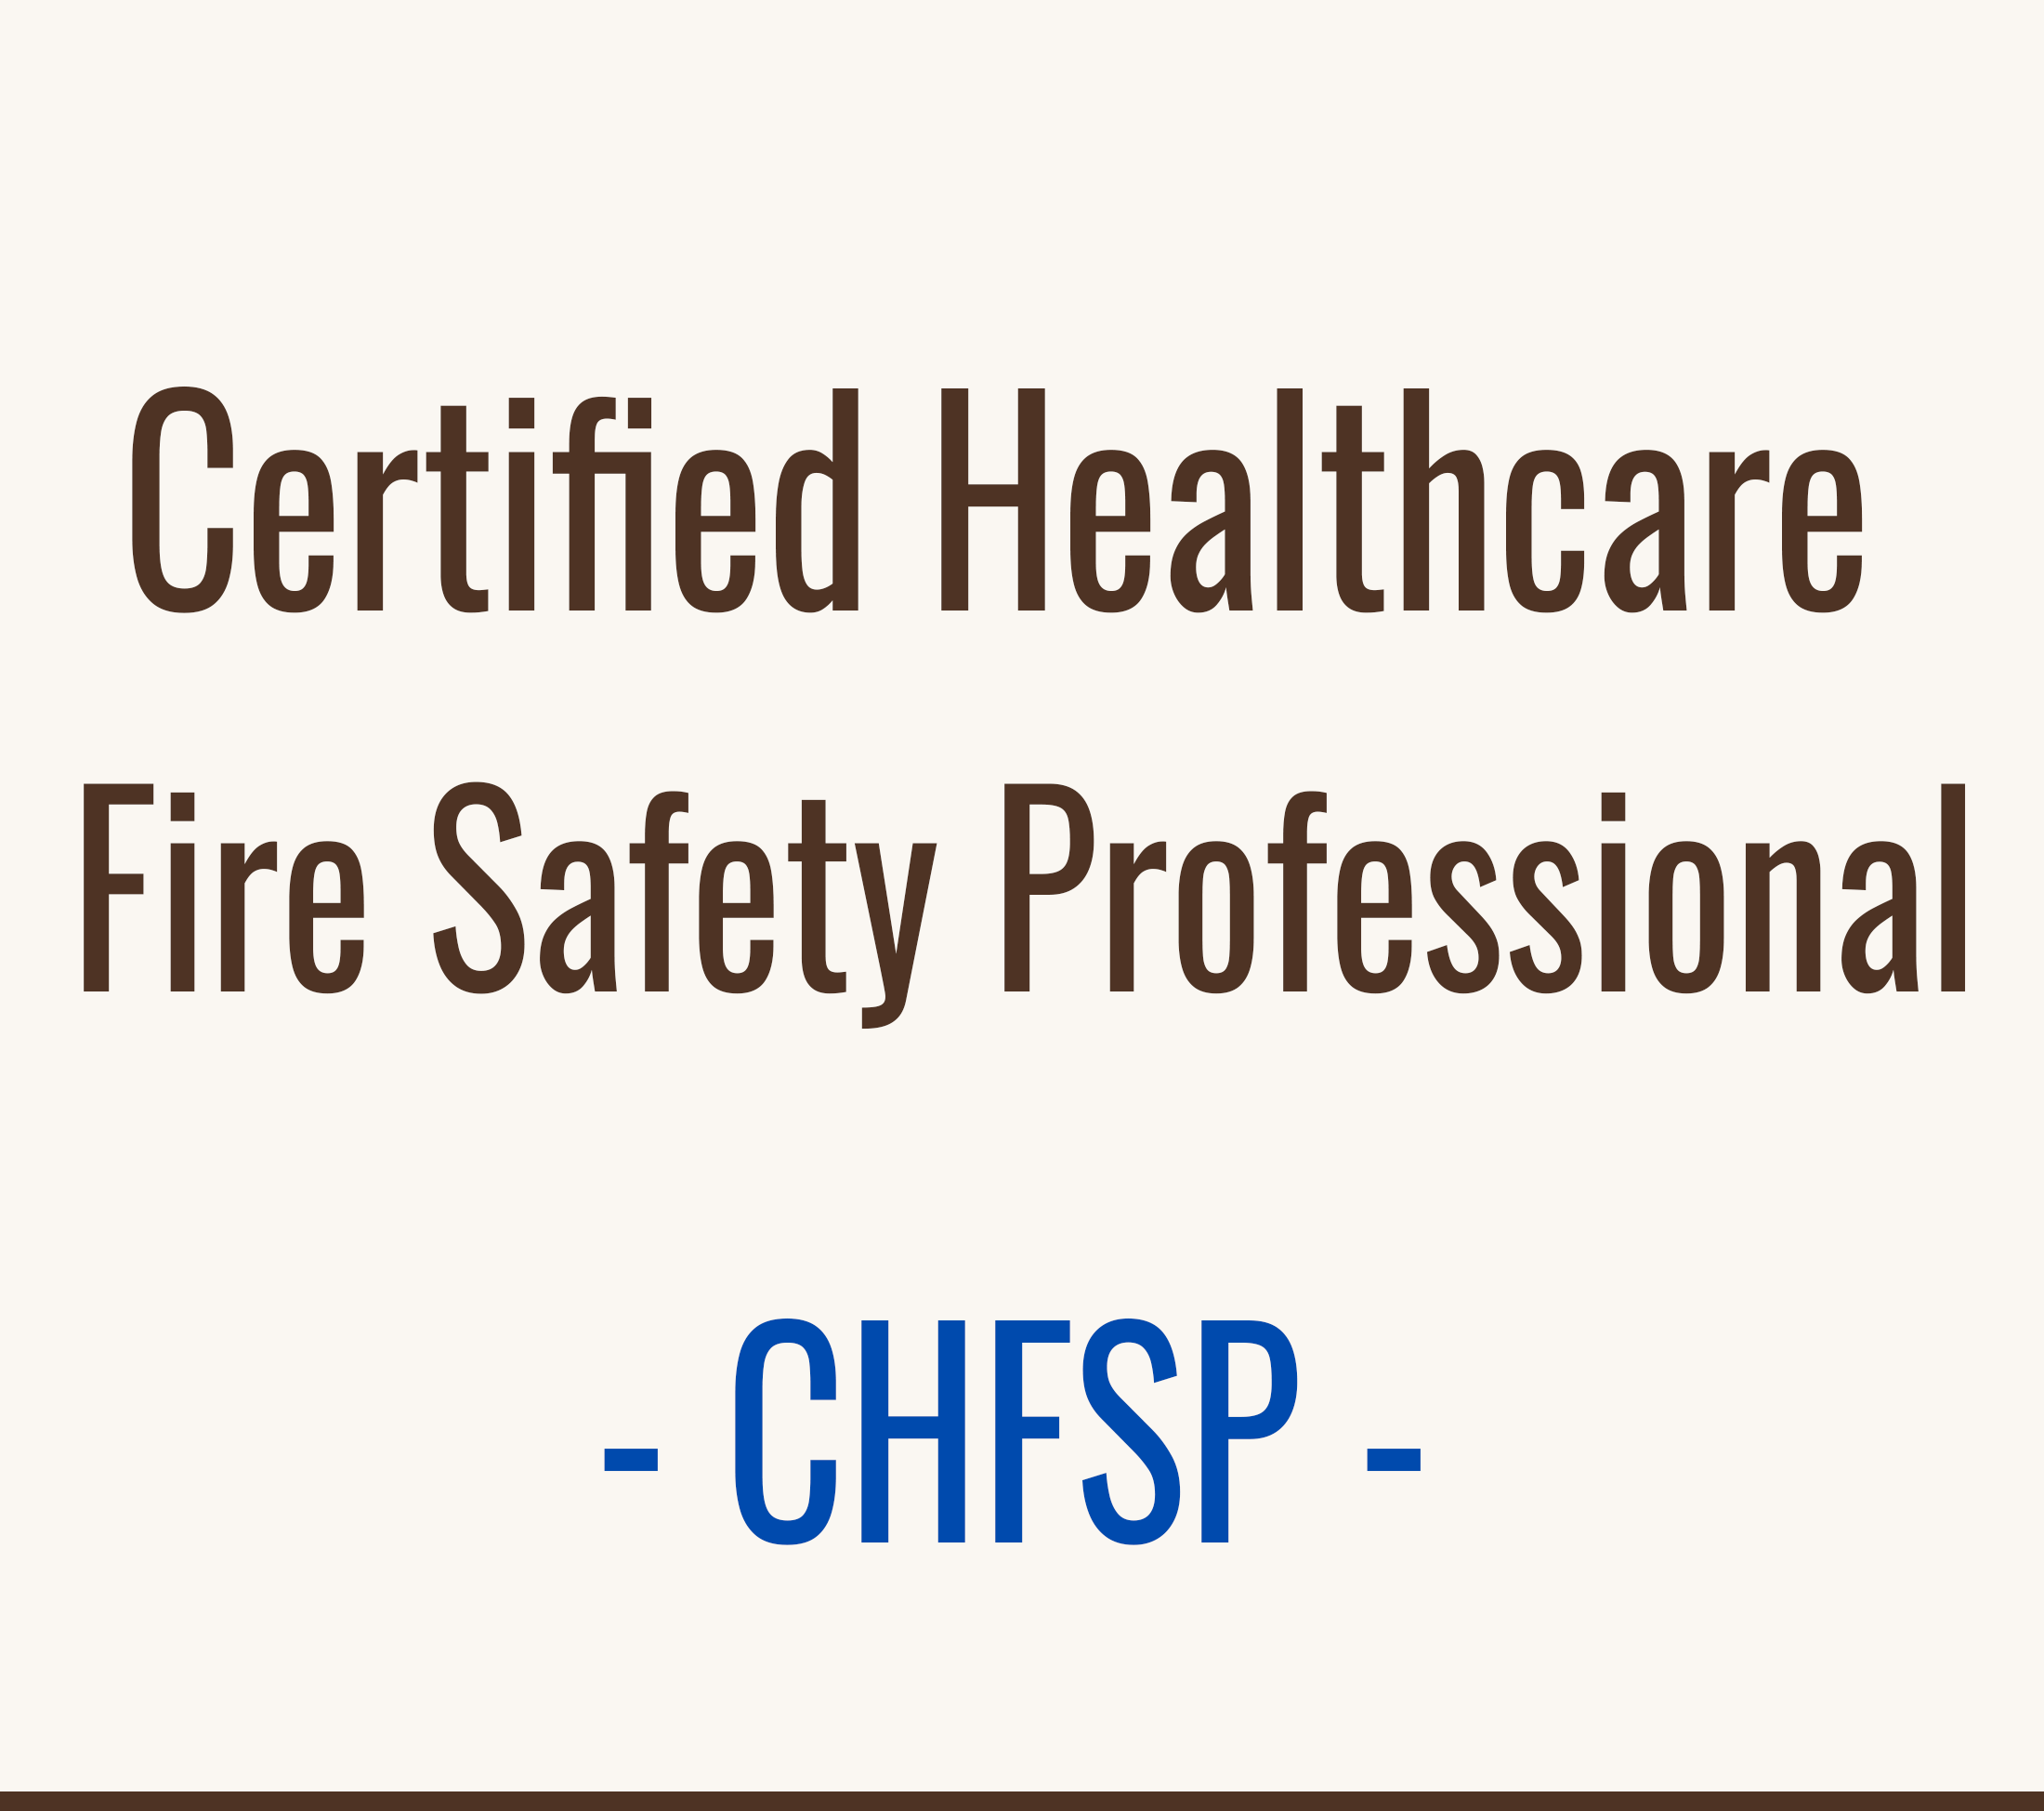 Certified Healthcare Fire Safety Professional